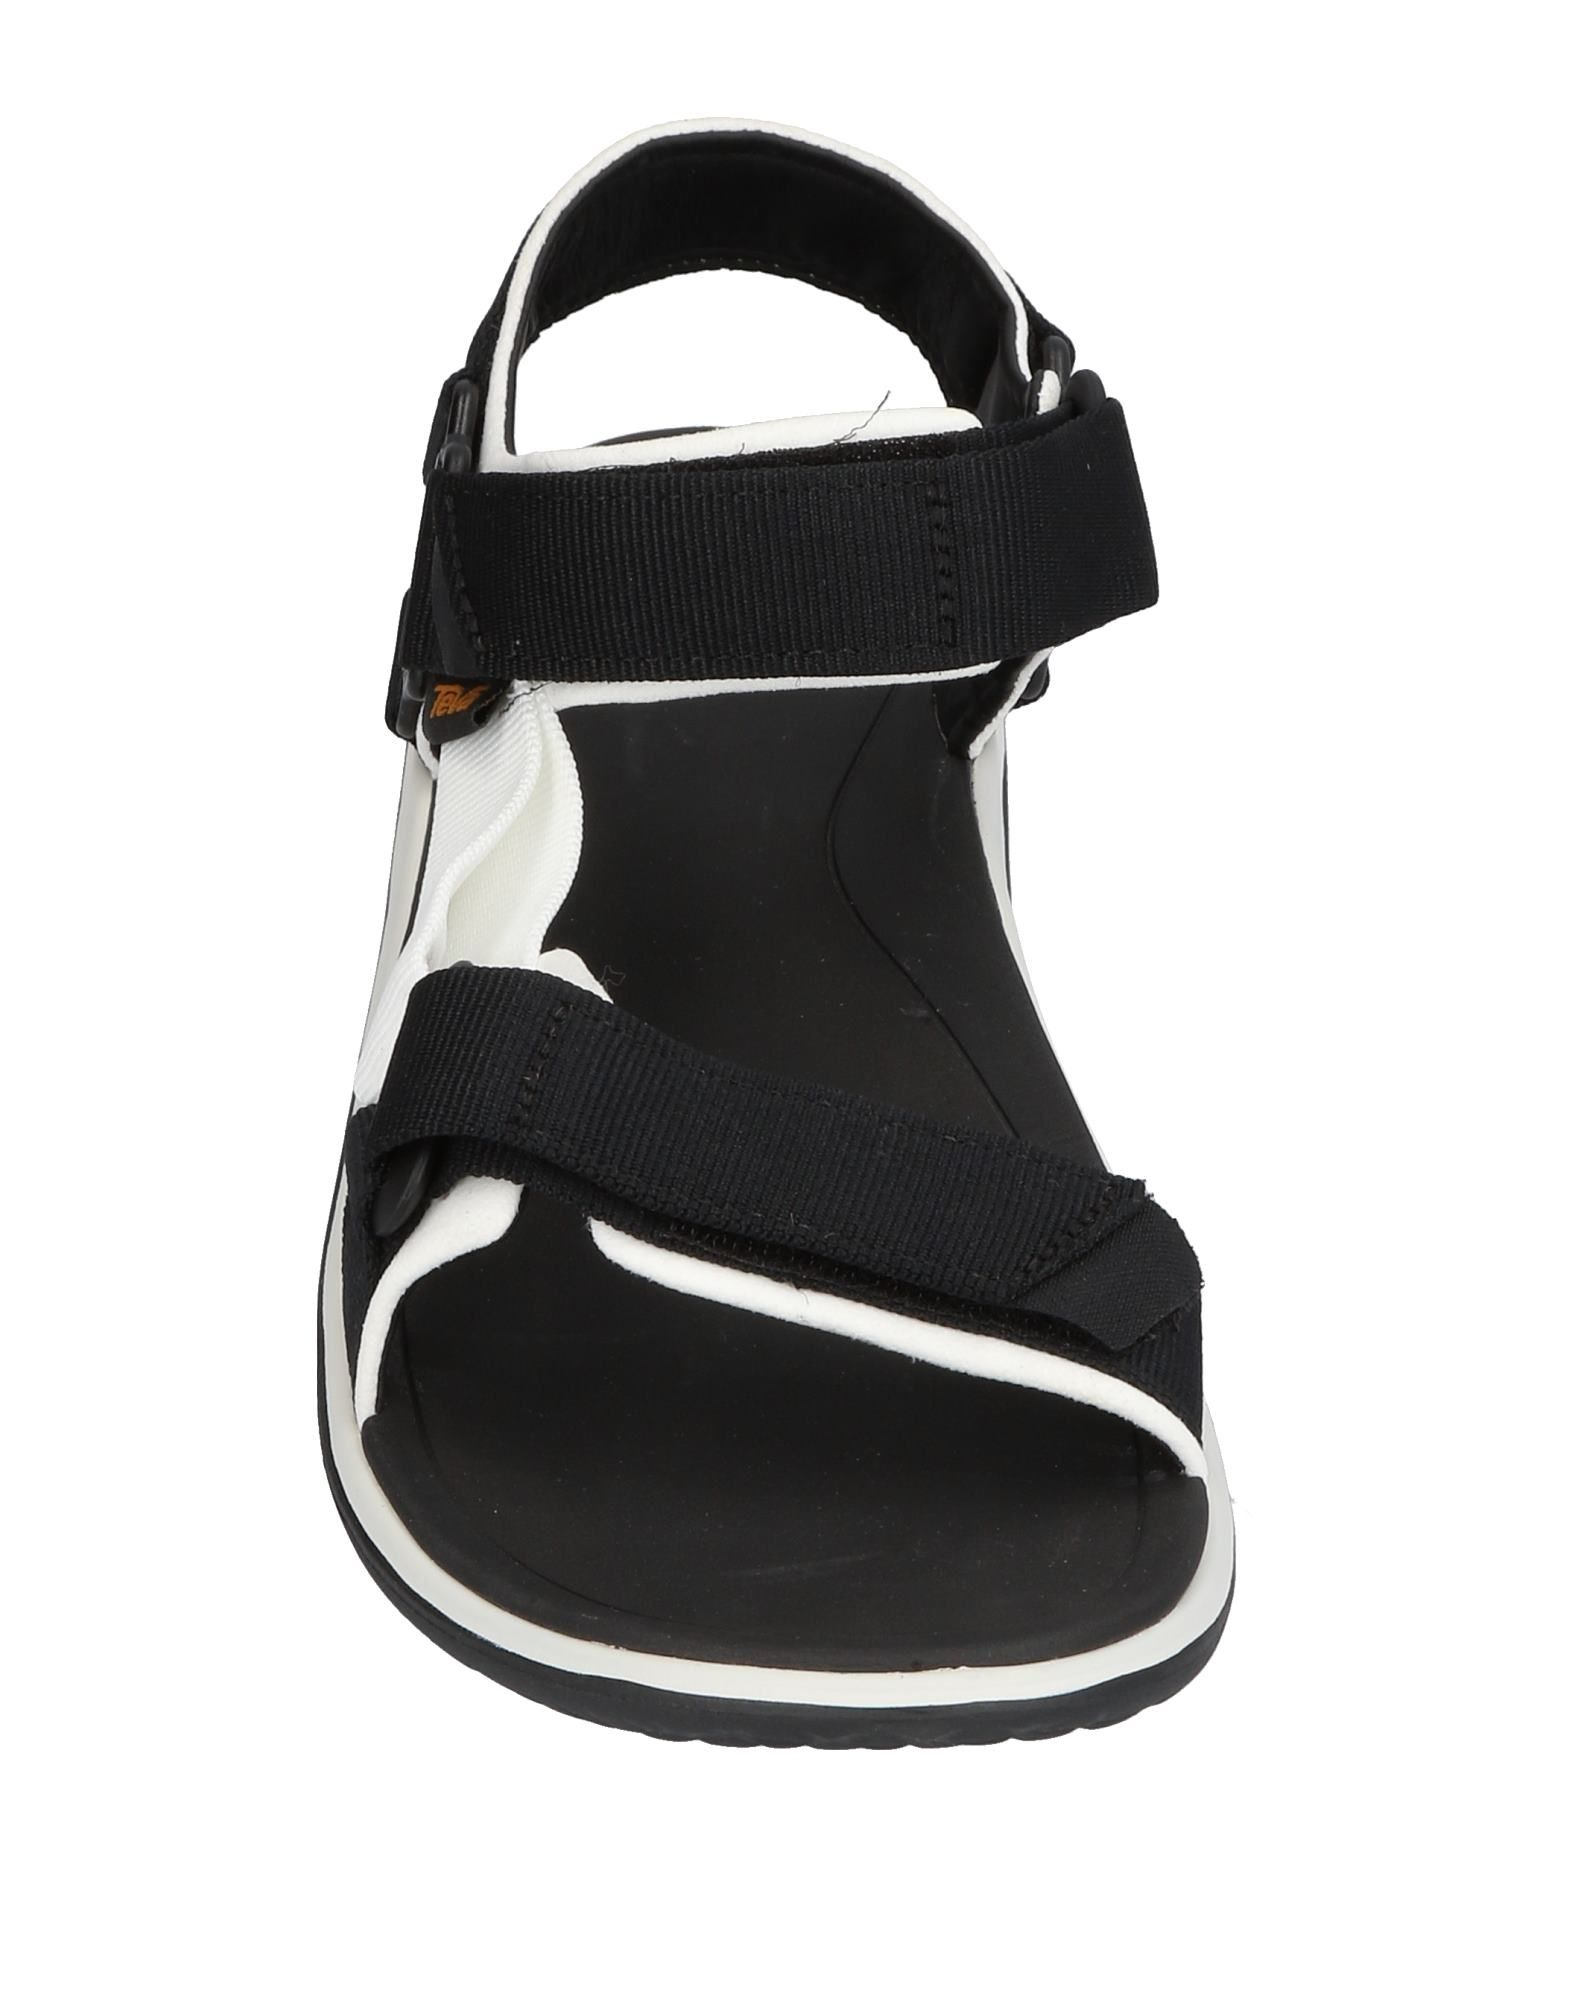 Teva Sandals Sandals Sandals - Men Teva Sandals online on  Canada - 11454717TR 00aaf4